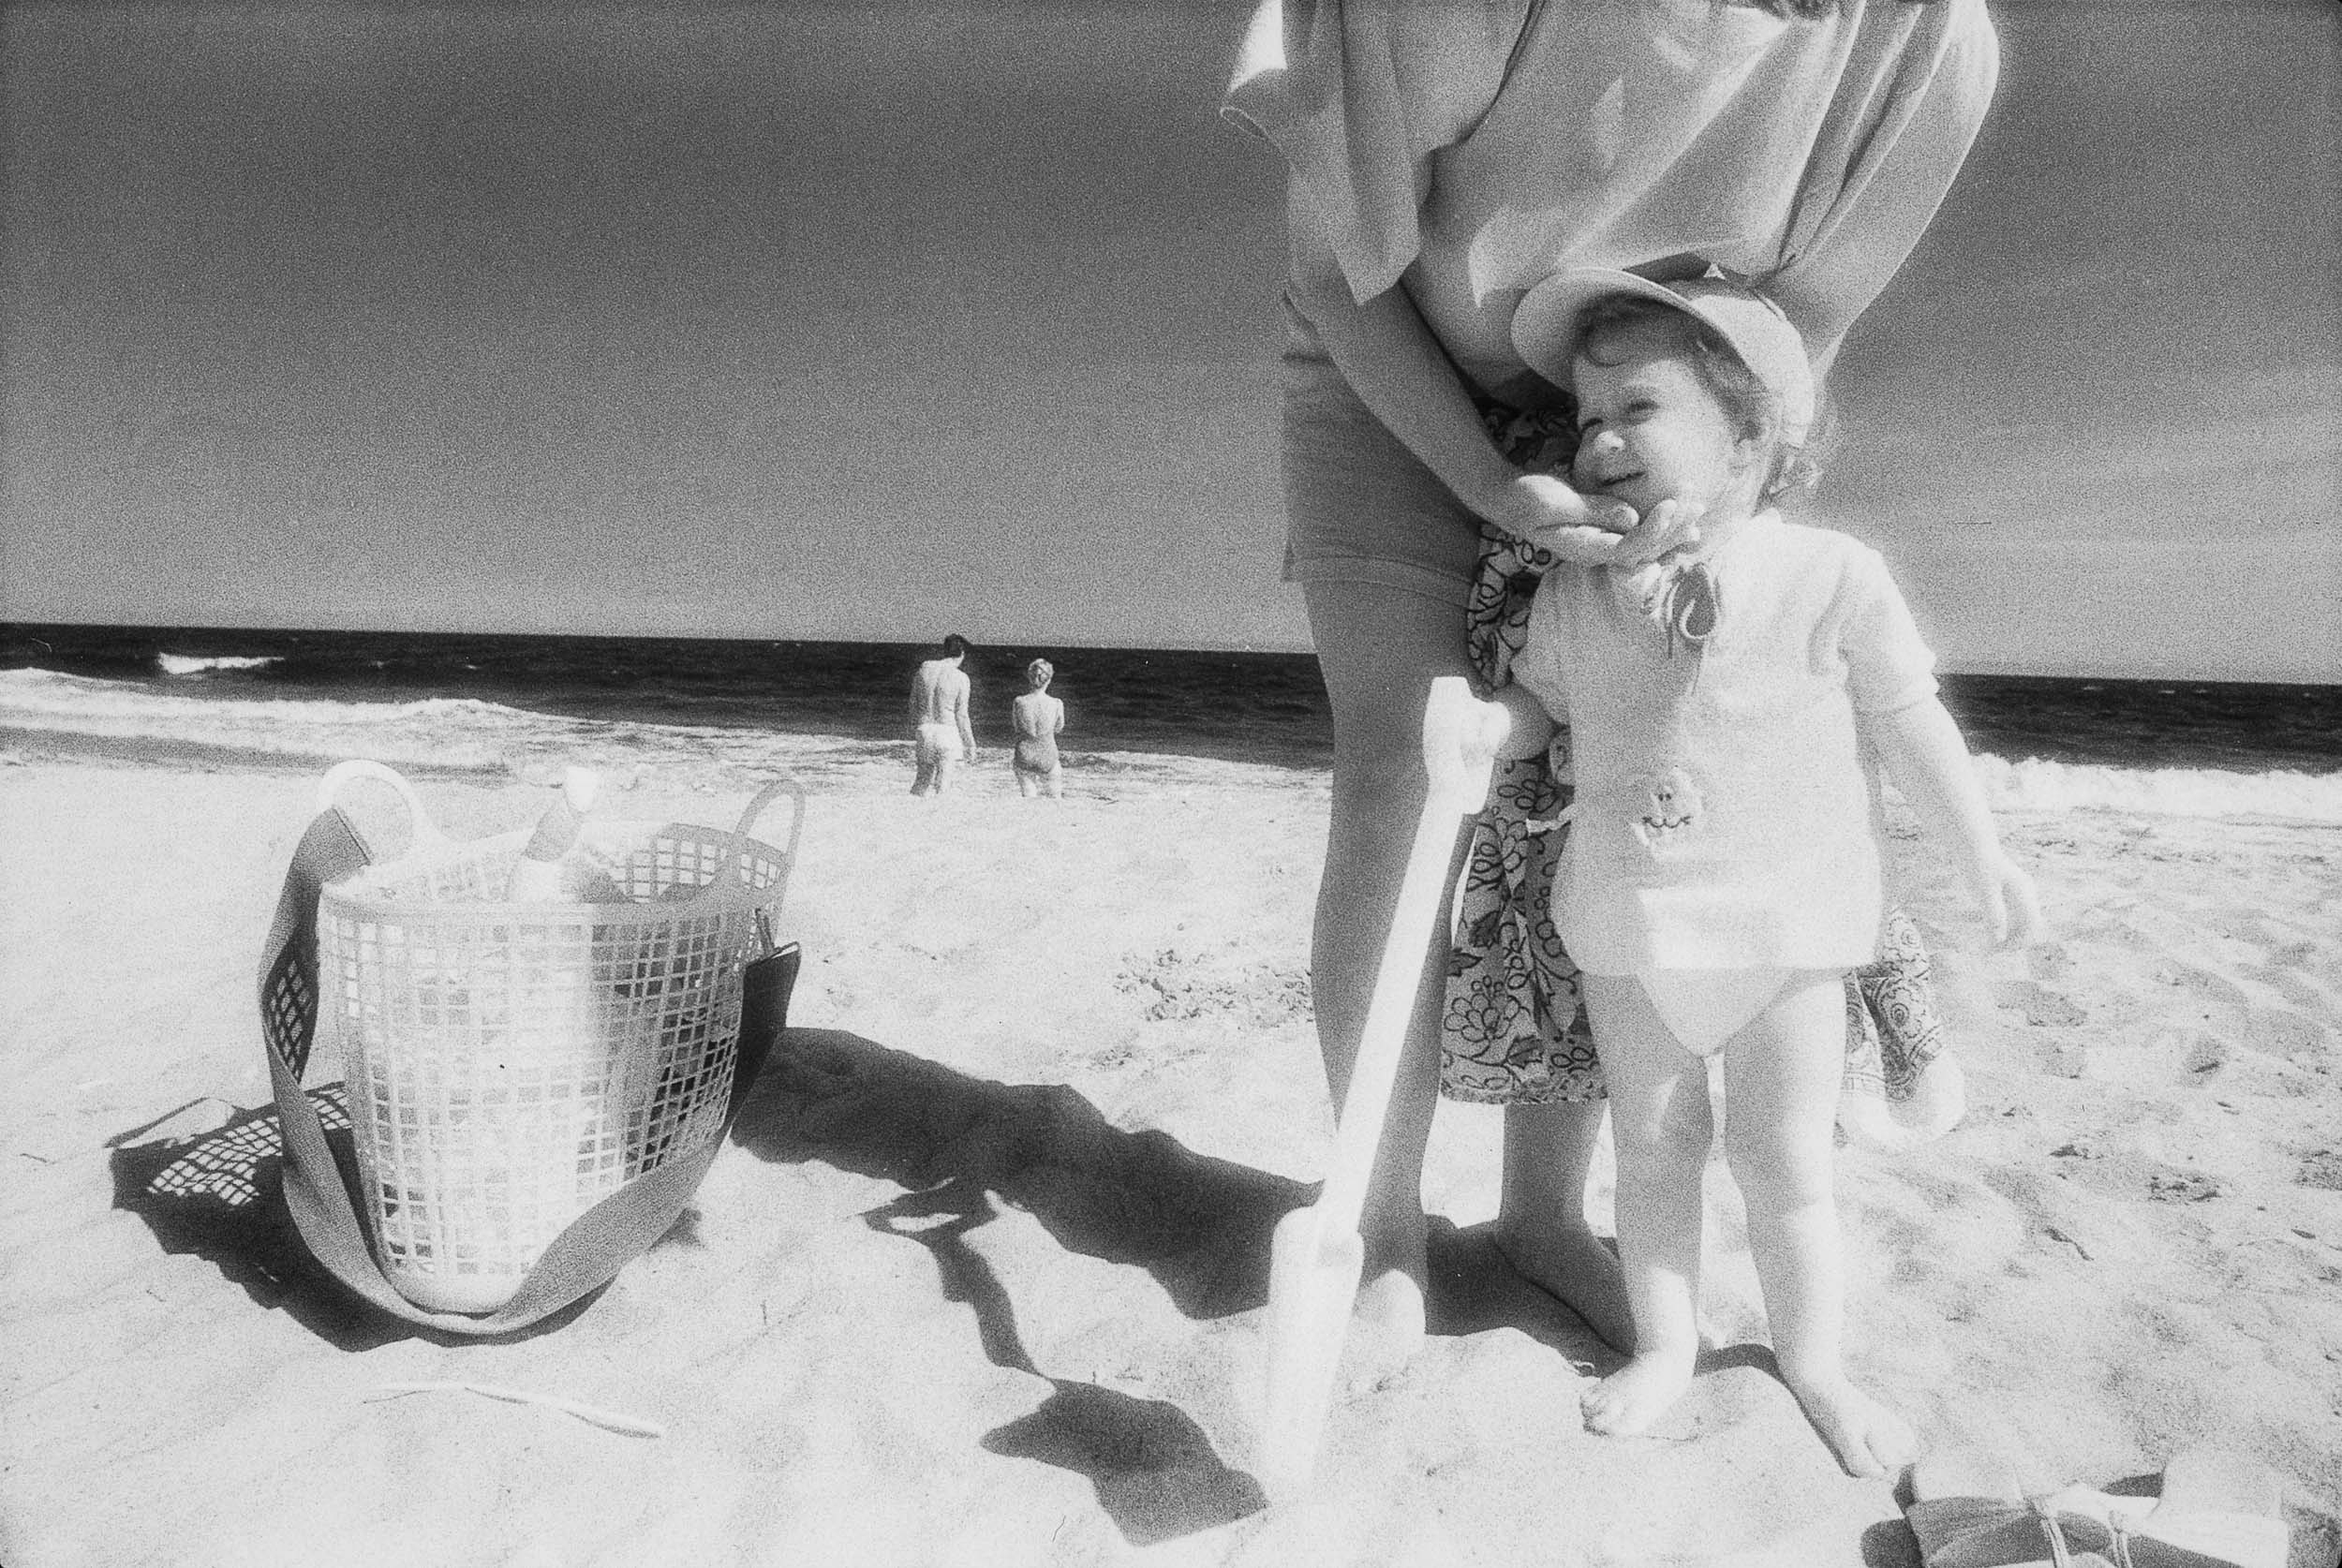 Barbara Alper- Photo of little boy with a shovel on Rockaway Beach NYC